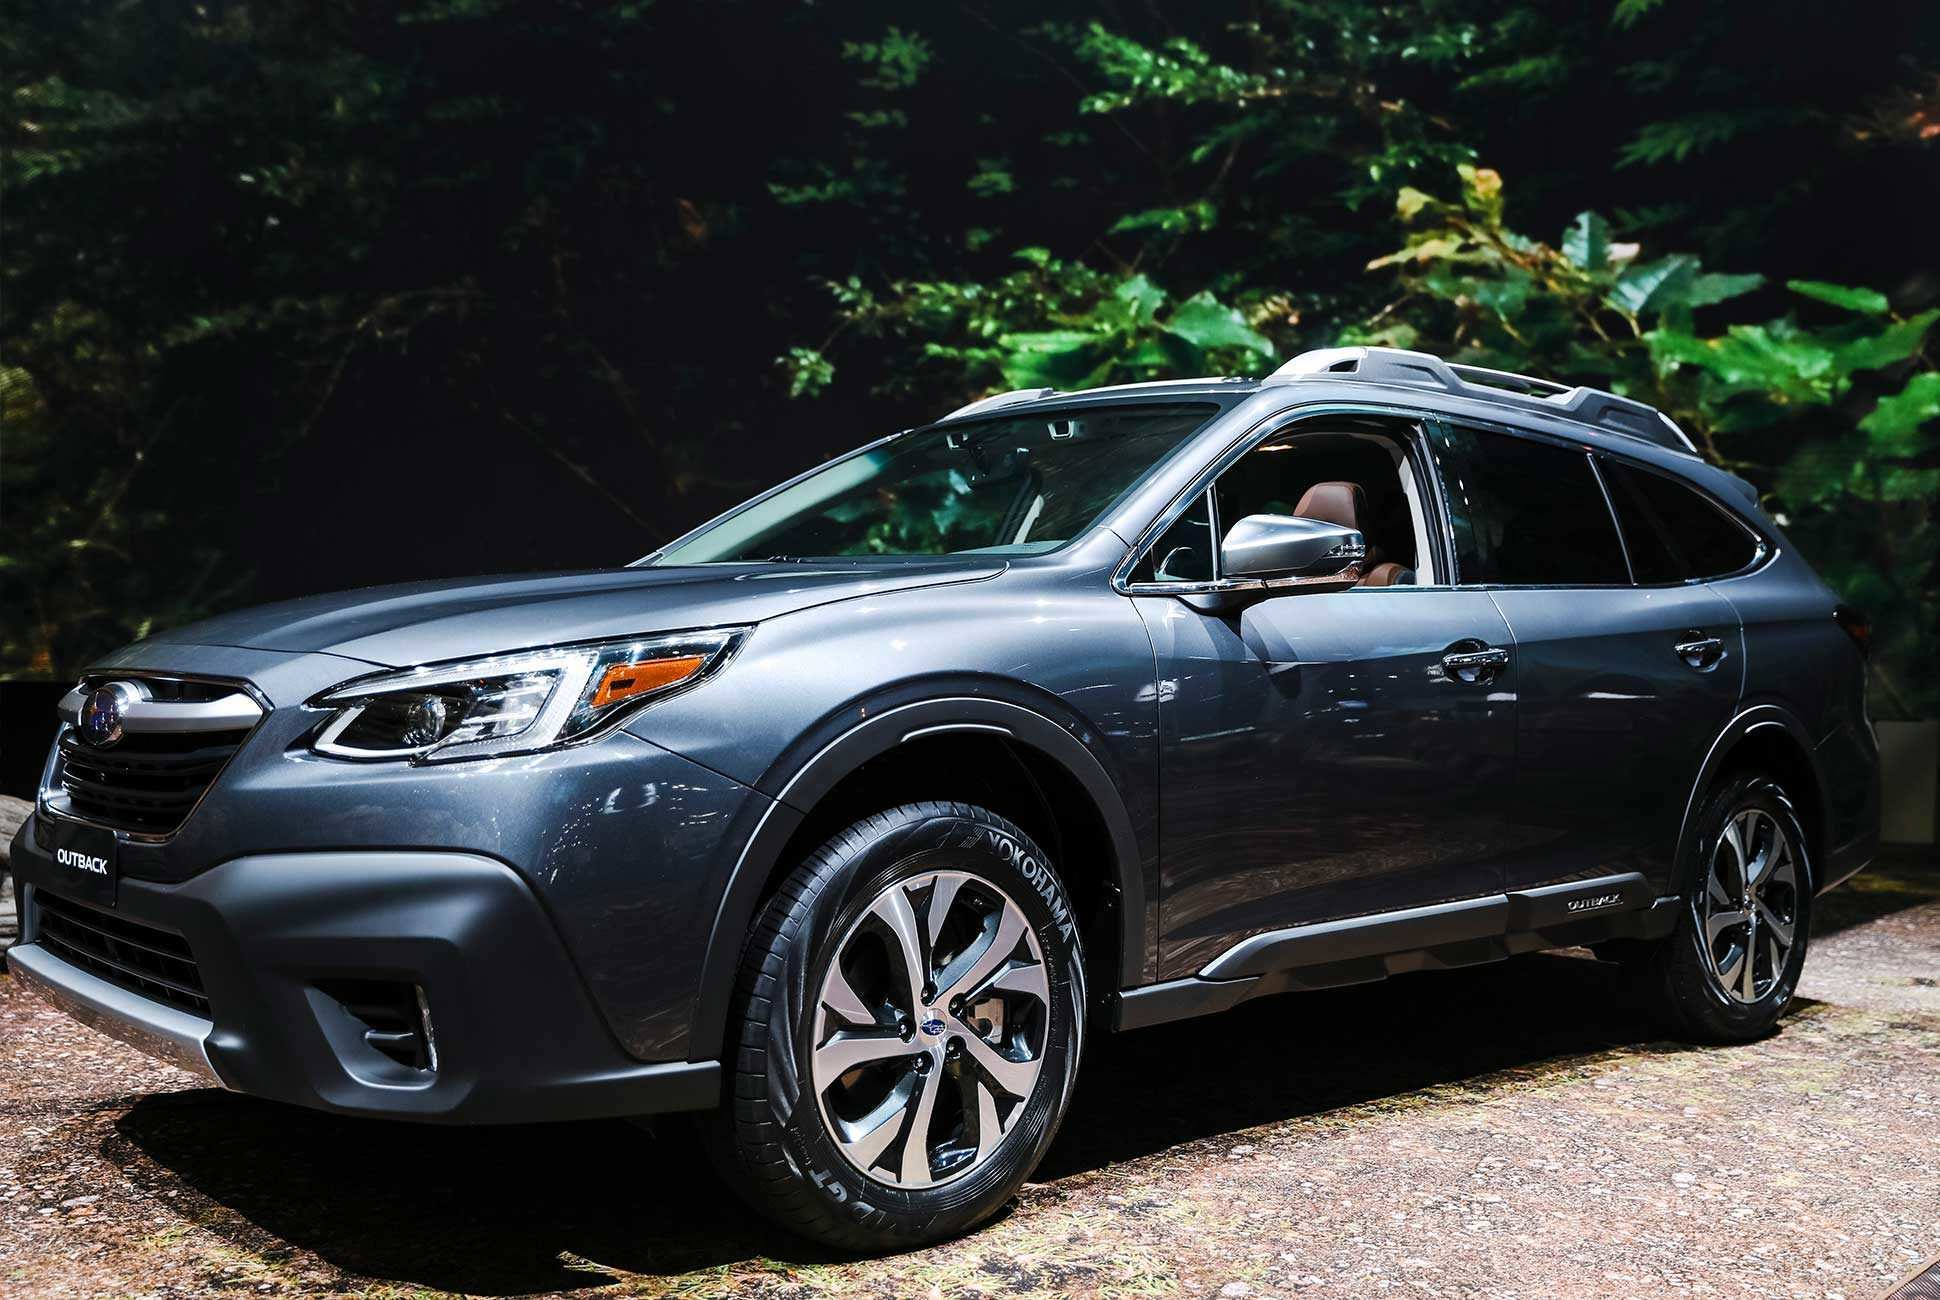 43 All New 2020 Subaru Outback Release Date And Concept